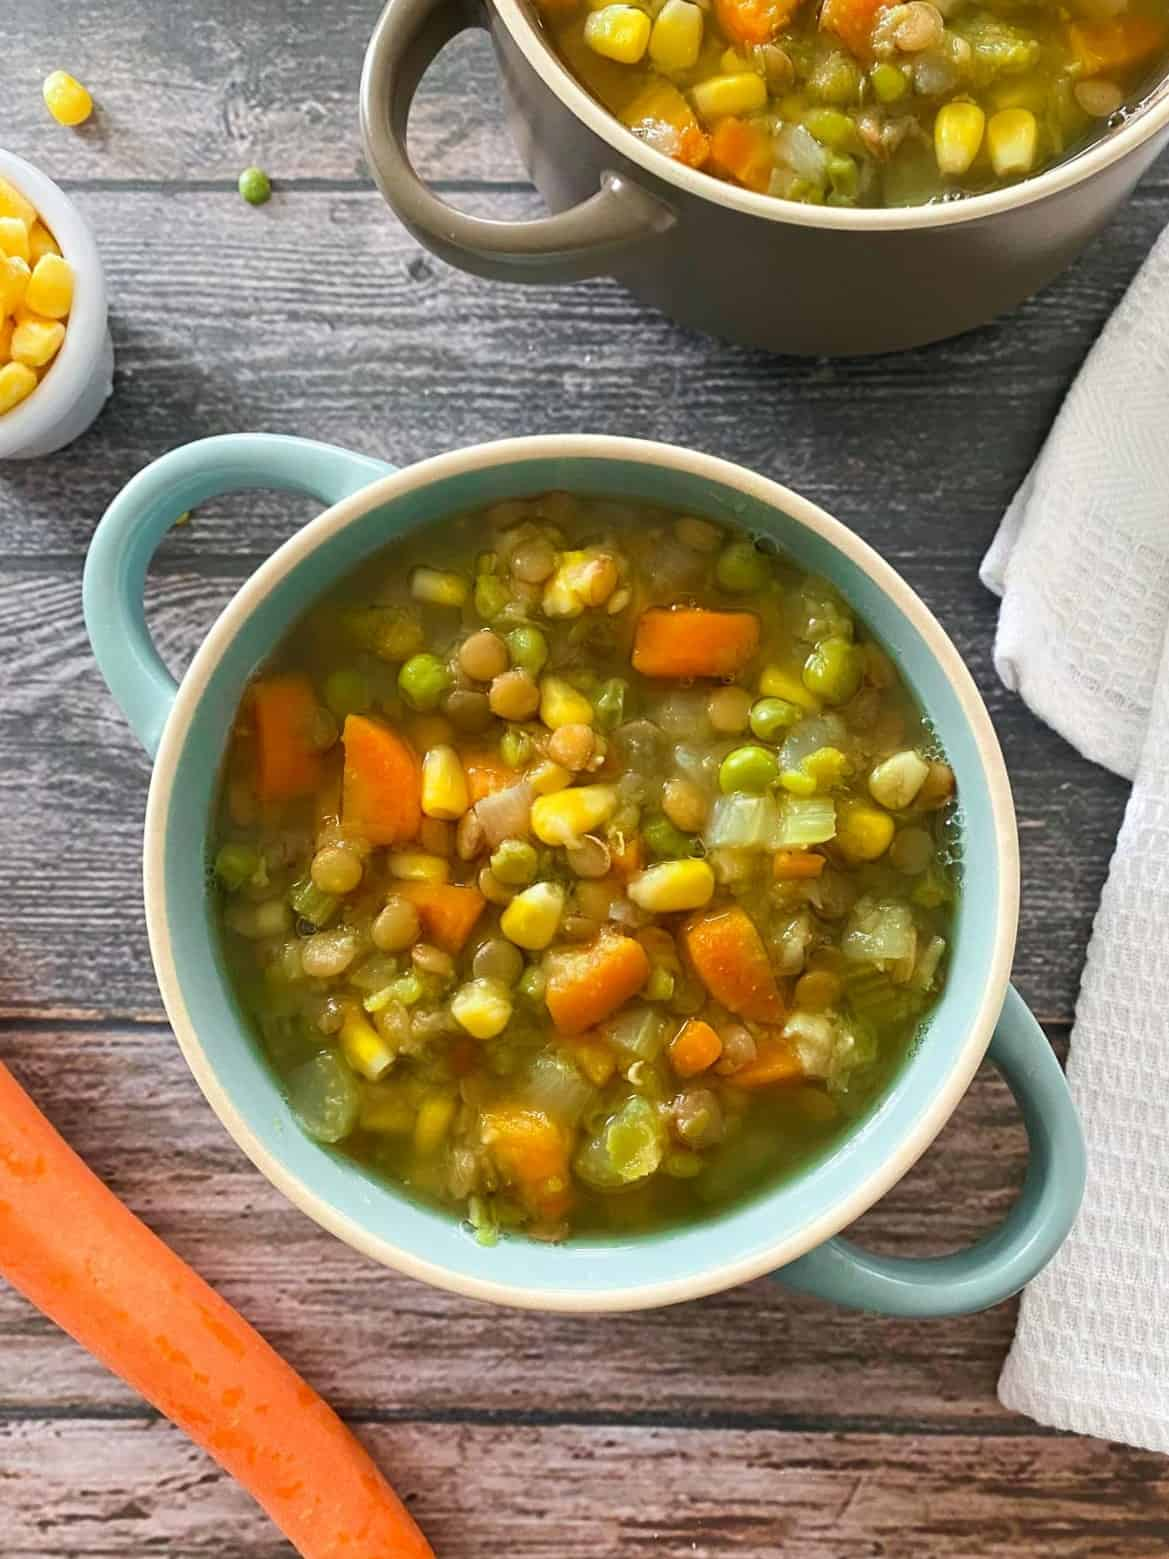 Blue bowl with handles filled with vegetable soup with lentils.